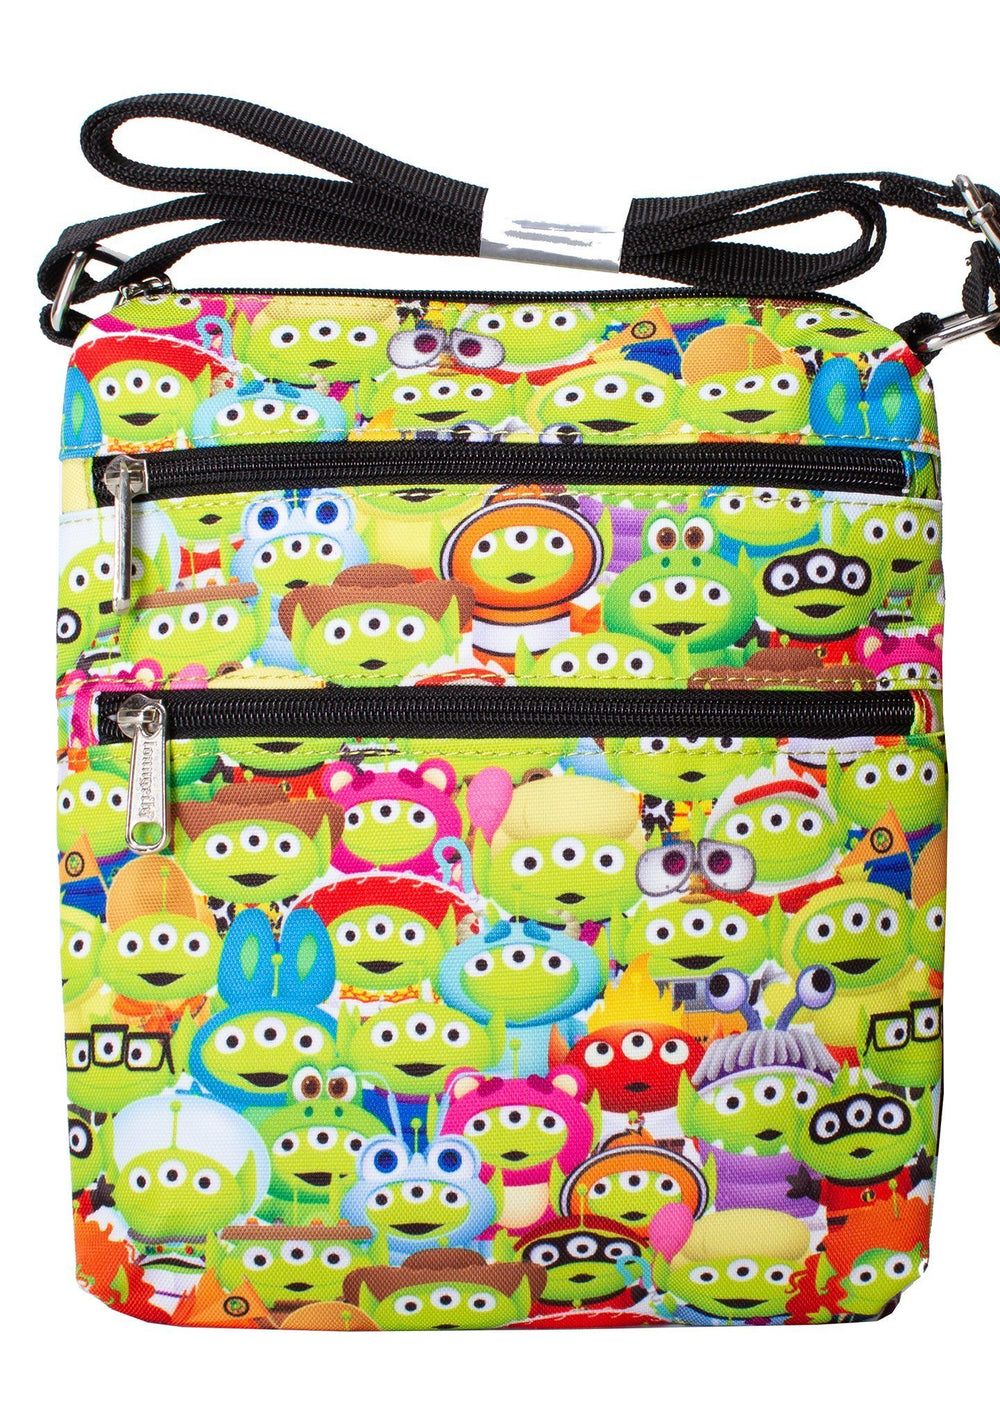 LOUNGEFLY x PIXAR Toy Story Alien Outfits Passport Bag